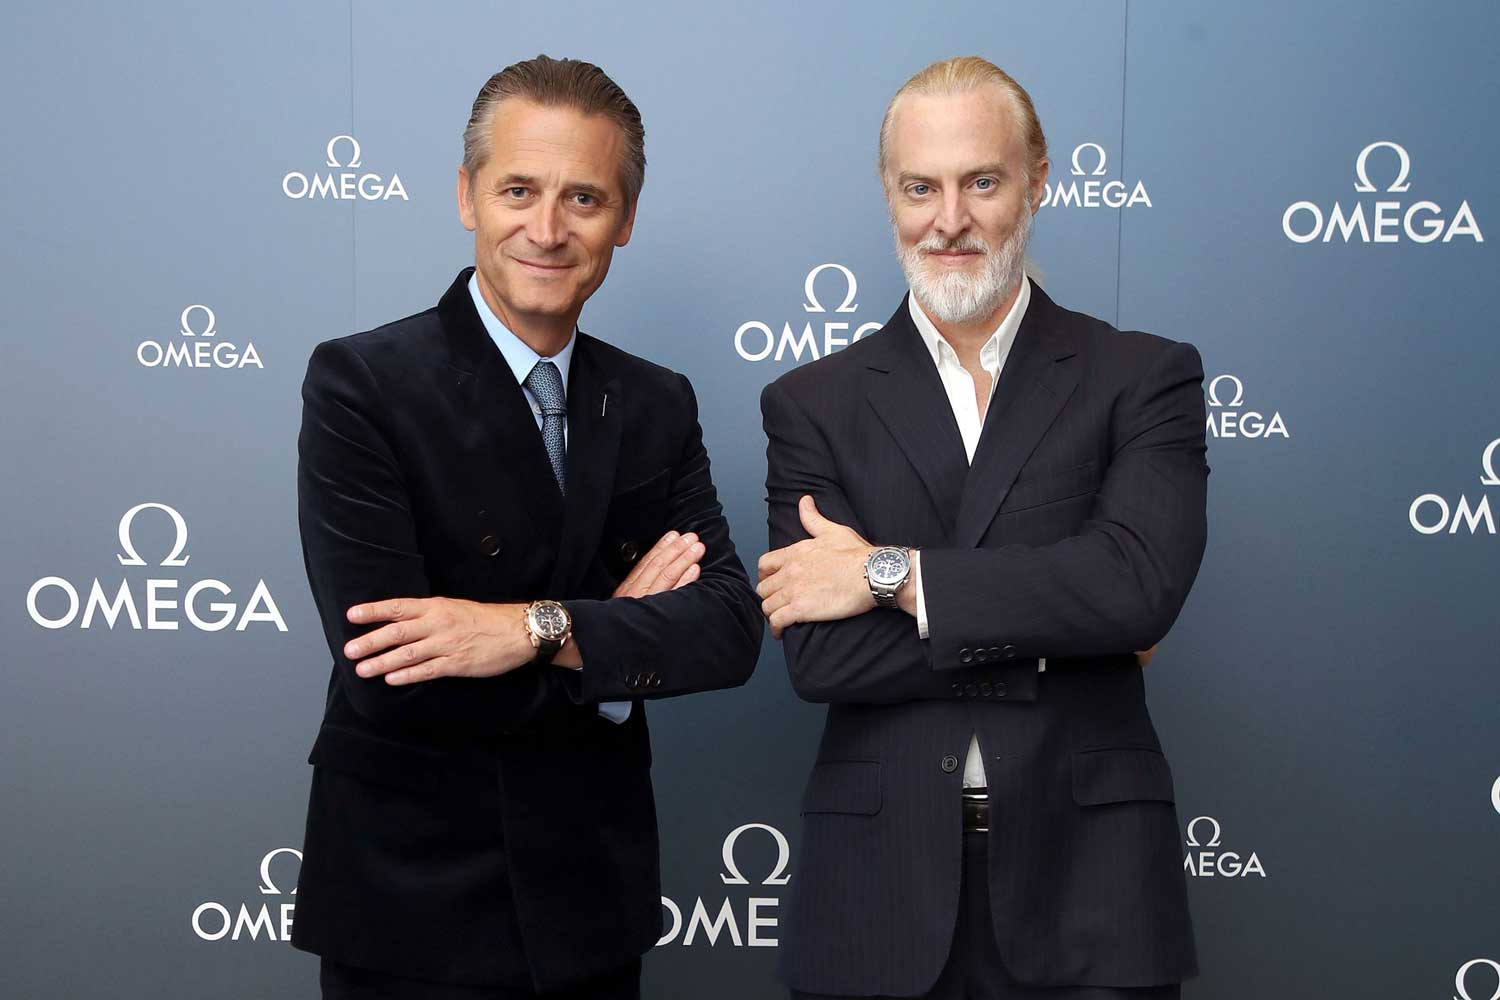 President and CEO of OMEGA, Raynald Aeschlimann, and Victor Vescovo